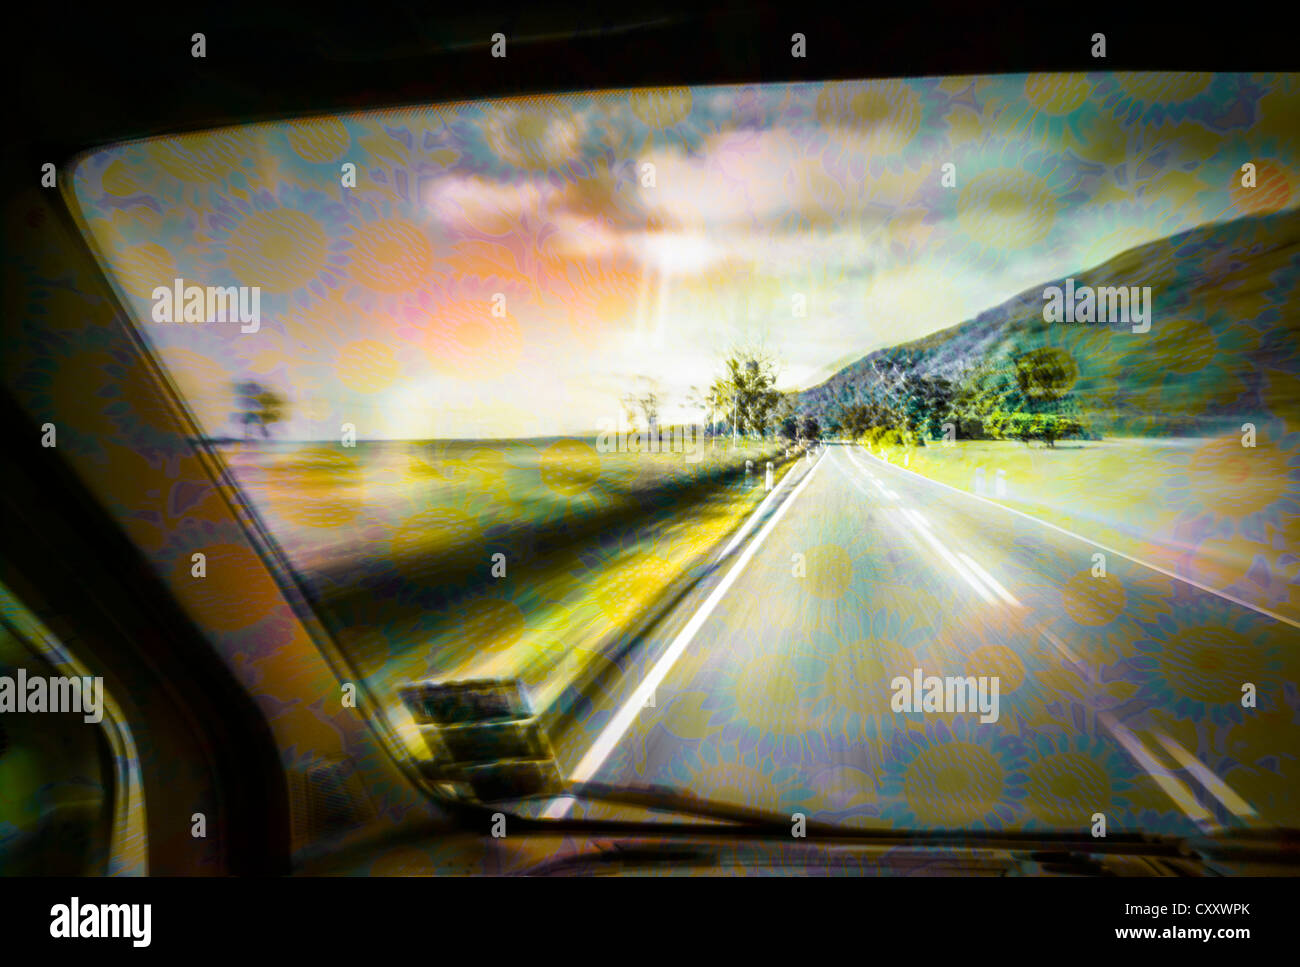 Driving under the influence of drugs, danger to road traffic, driving on the left, view from inside a car on the - Stock Image